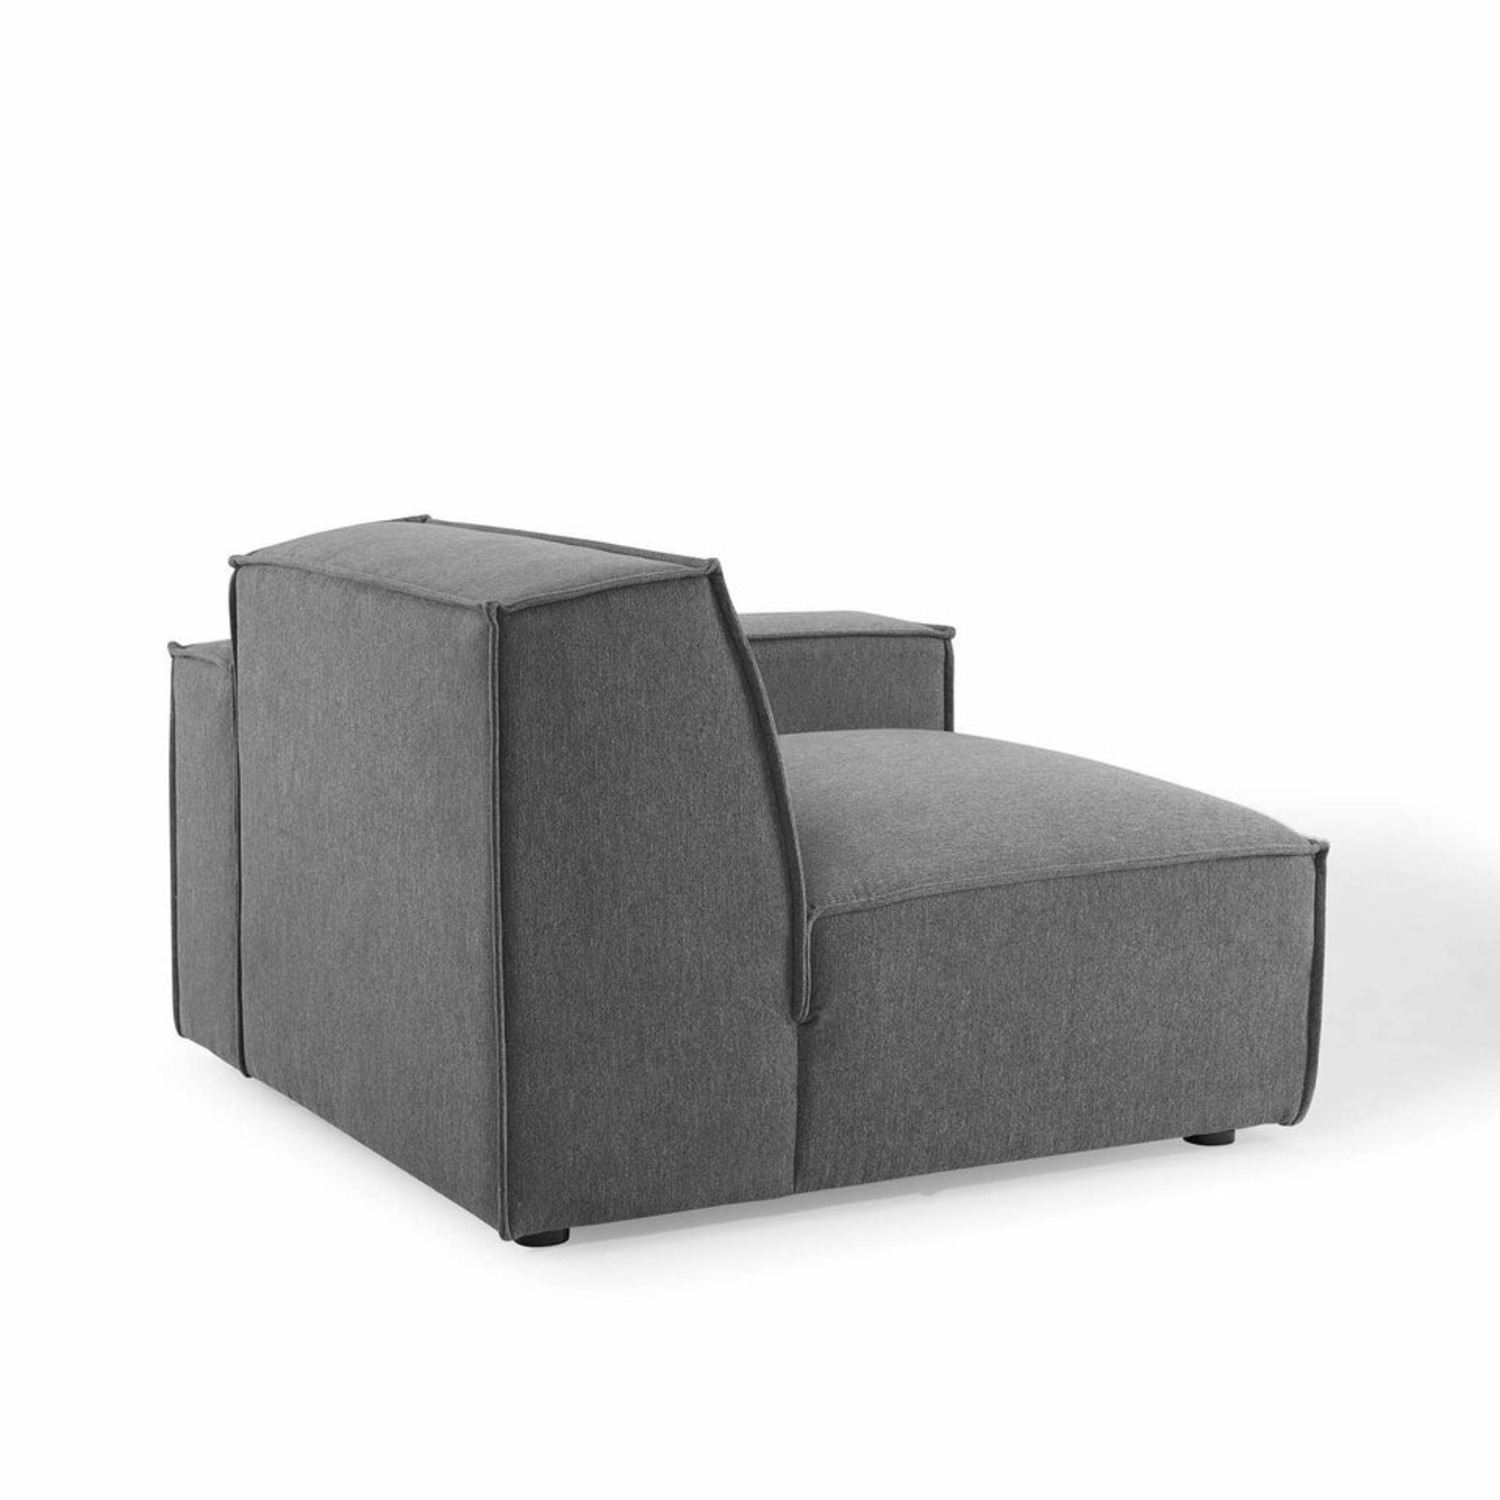 4-Piece Sectional Sofa In Charcoal Upholstery - image-4